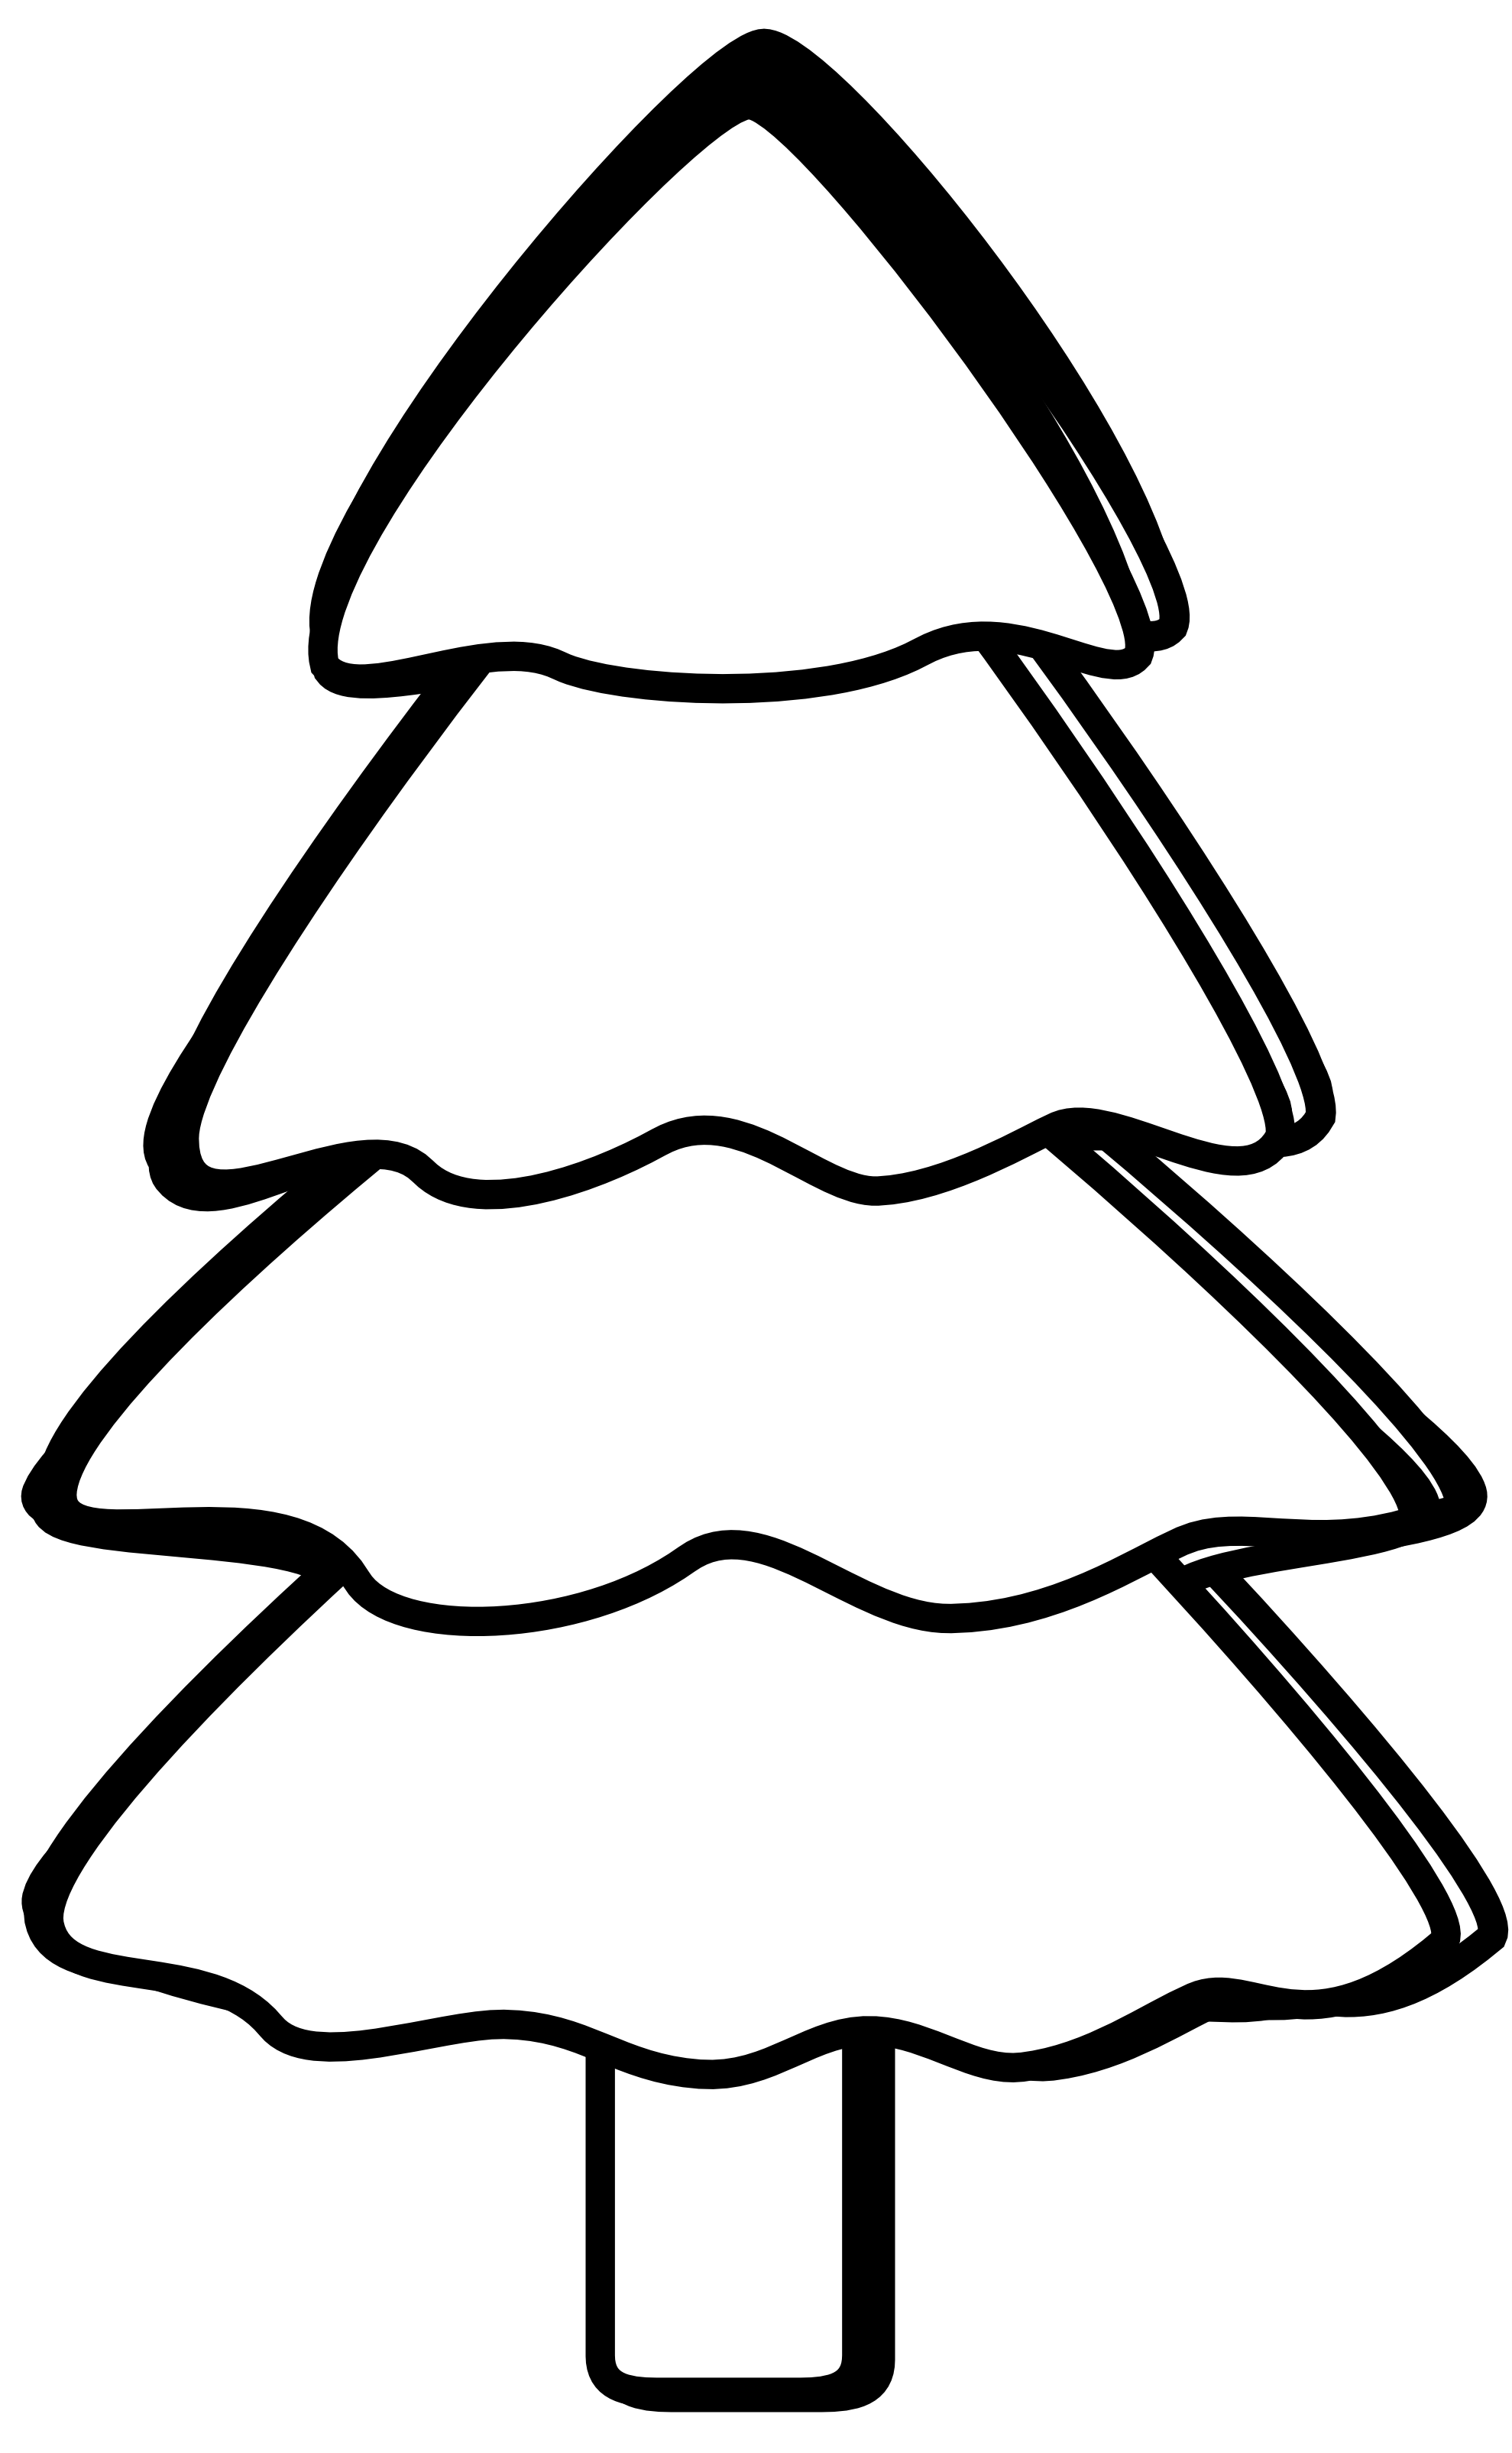 Black And White Tree Clipart-black and white tree clipart-3